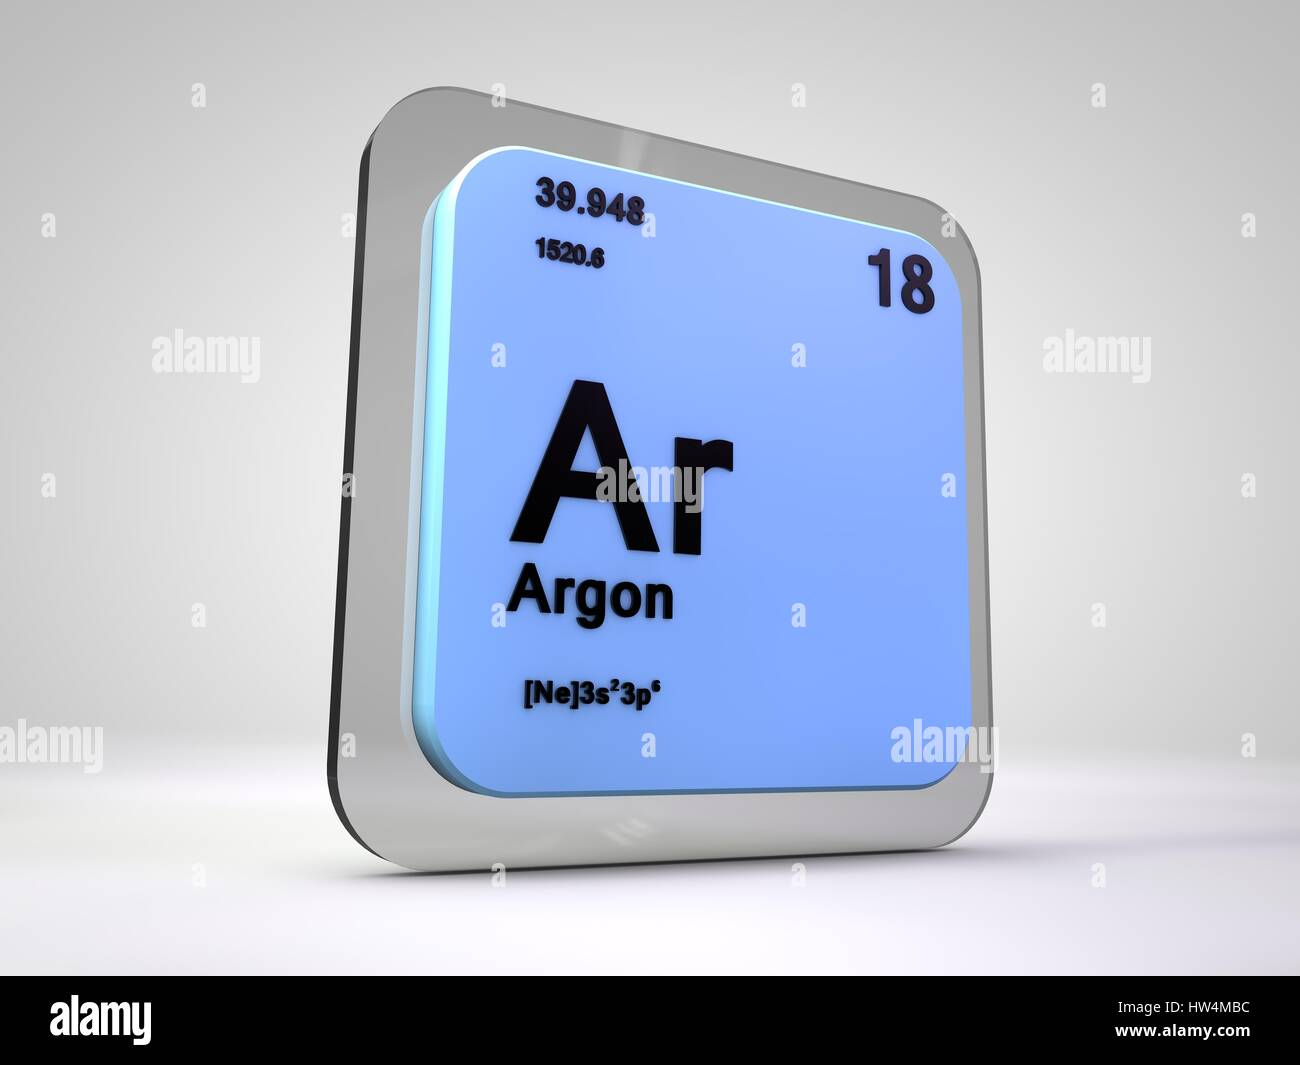 Argon ar chemical element periodic table 3d render stock photo argon ar chemical element periodic table 3d render gamestrikefo Choice Image